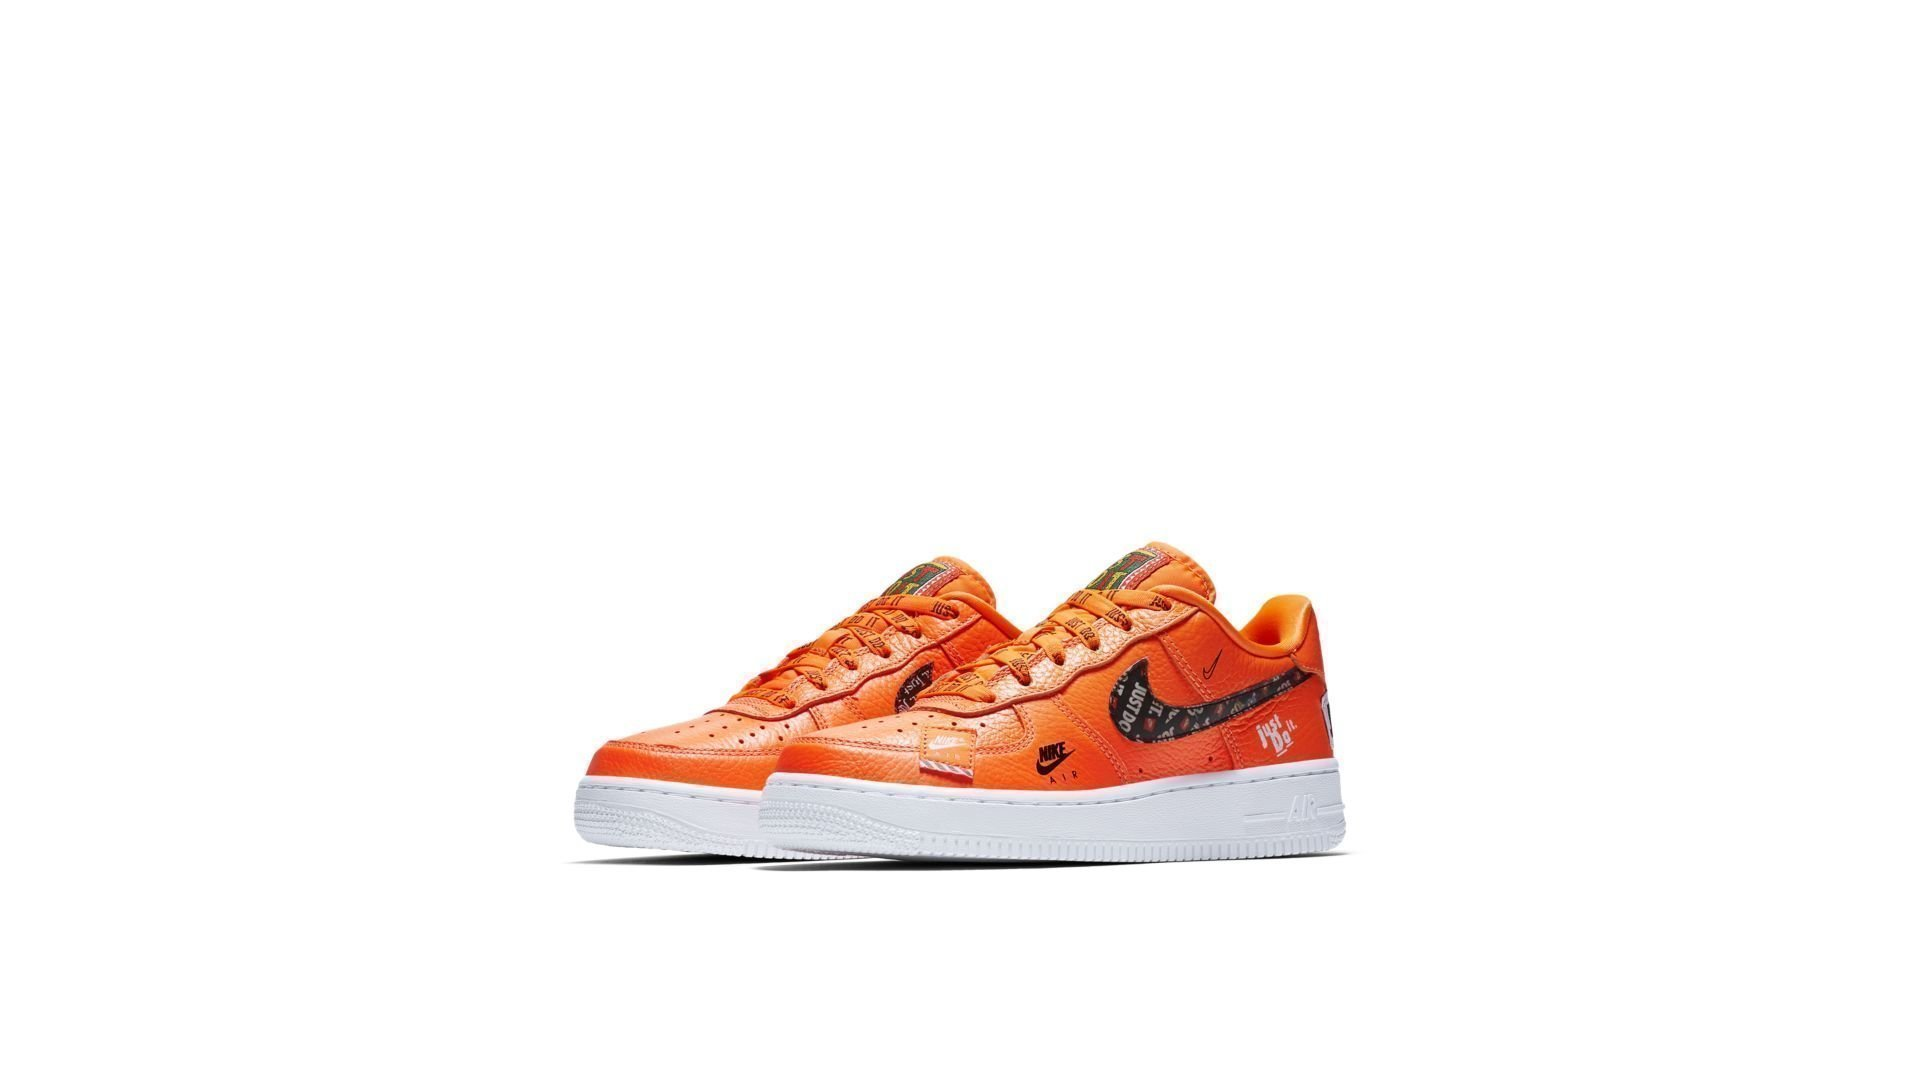 Nike Air Force 1 Low Just Do It Pack White (GS) WhiteTotal Orange Black AO3977 100